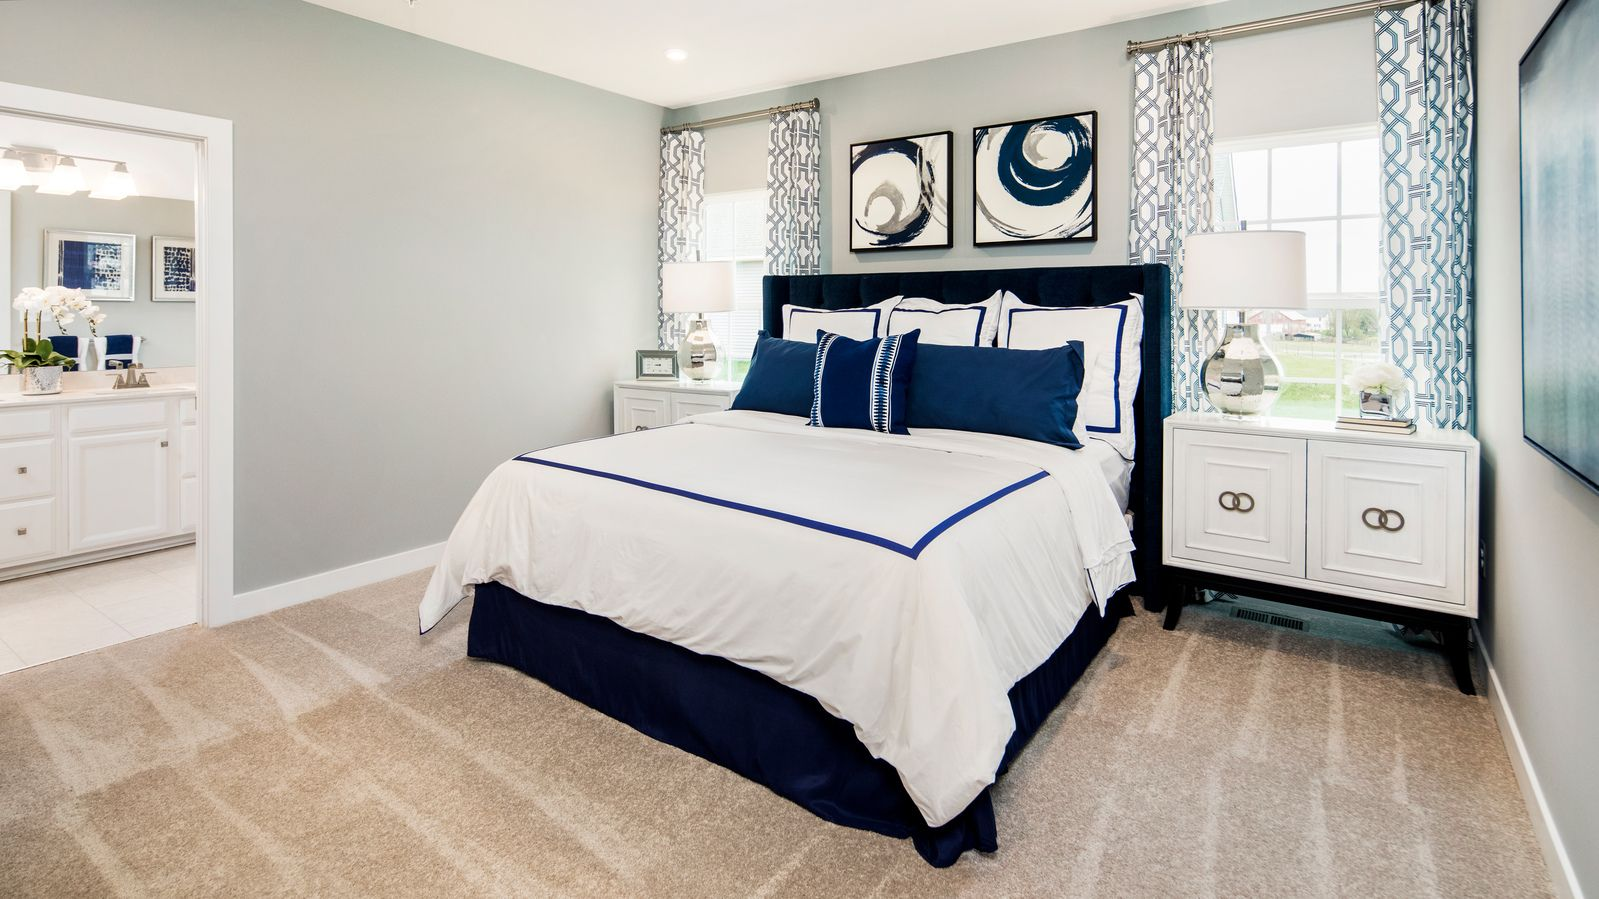 Bedroom featured in the Ashbrooke By Ryan Homes in Washington, MD